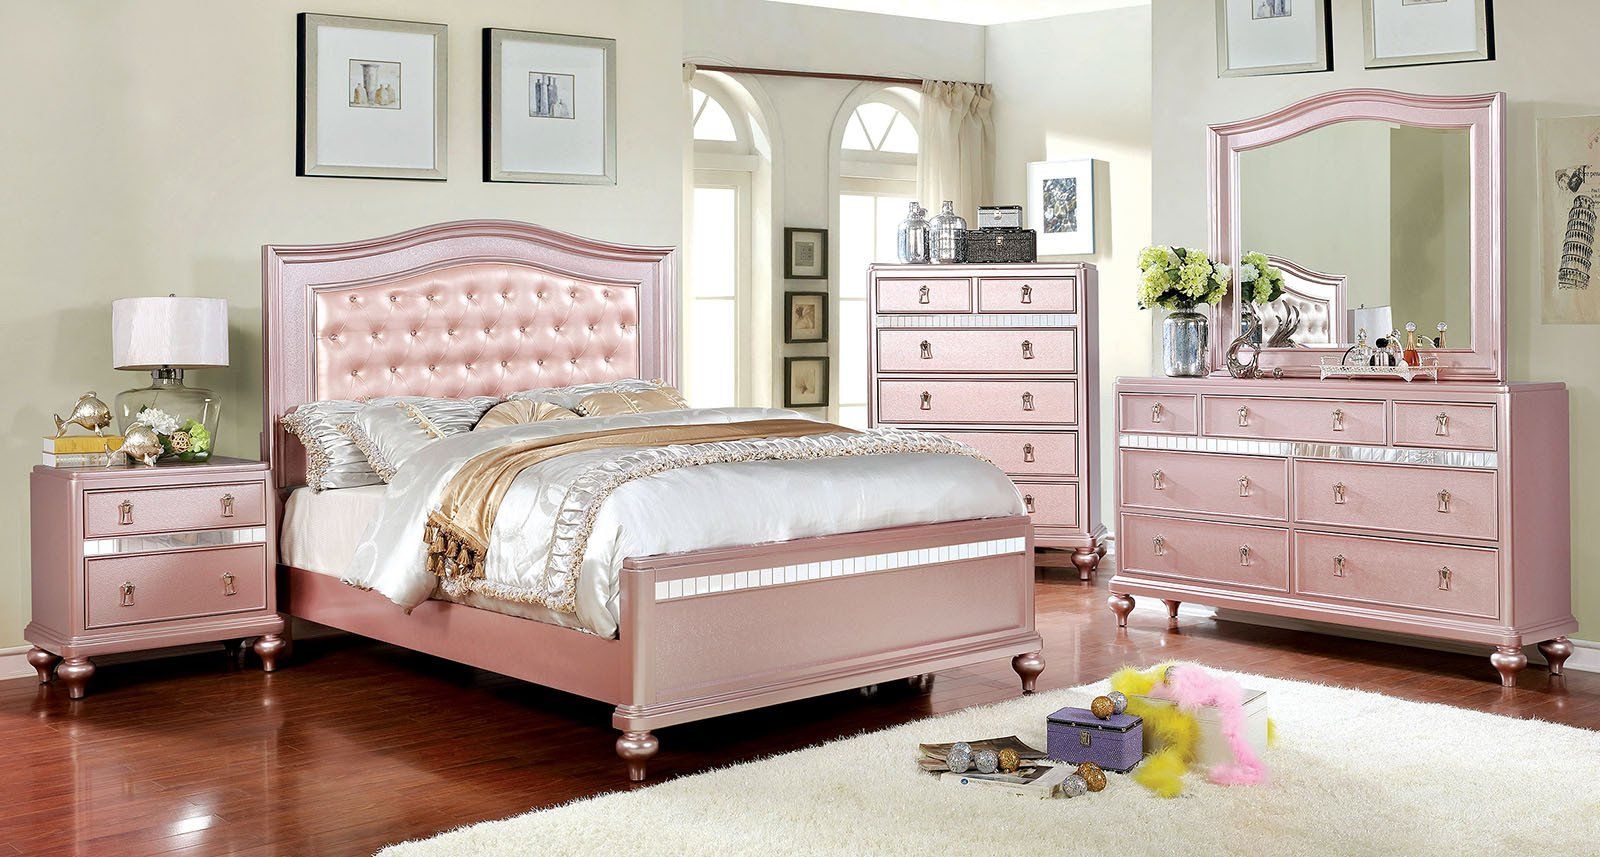 Cal King Bedroom Set Luxury Ariston Rose Gold Finish Cal King Size Bed with Mirrored Trim Jeweled button Tufted Padded Leather Headboard